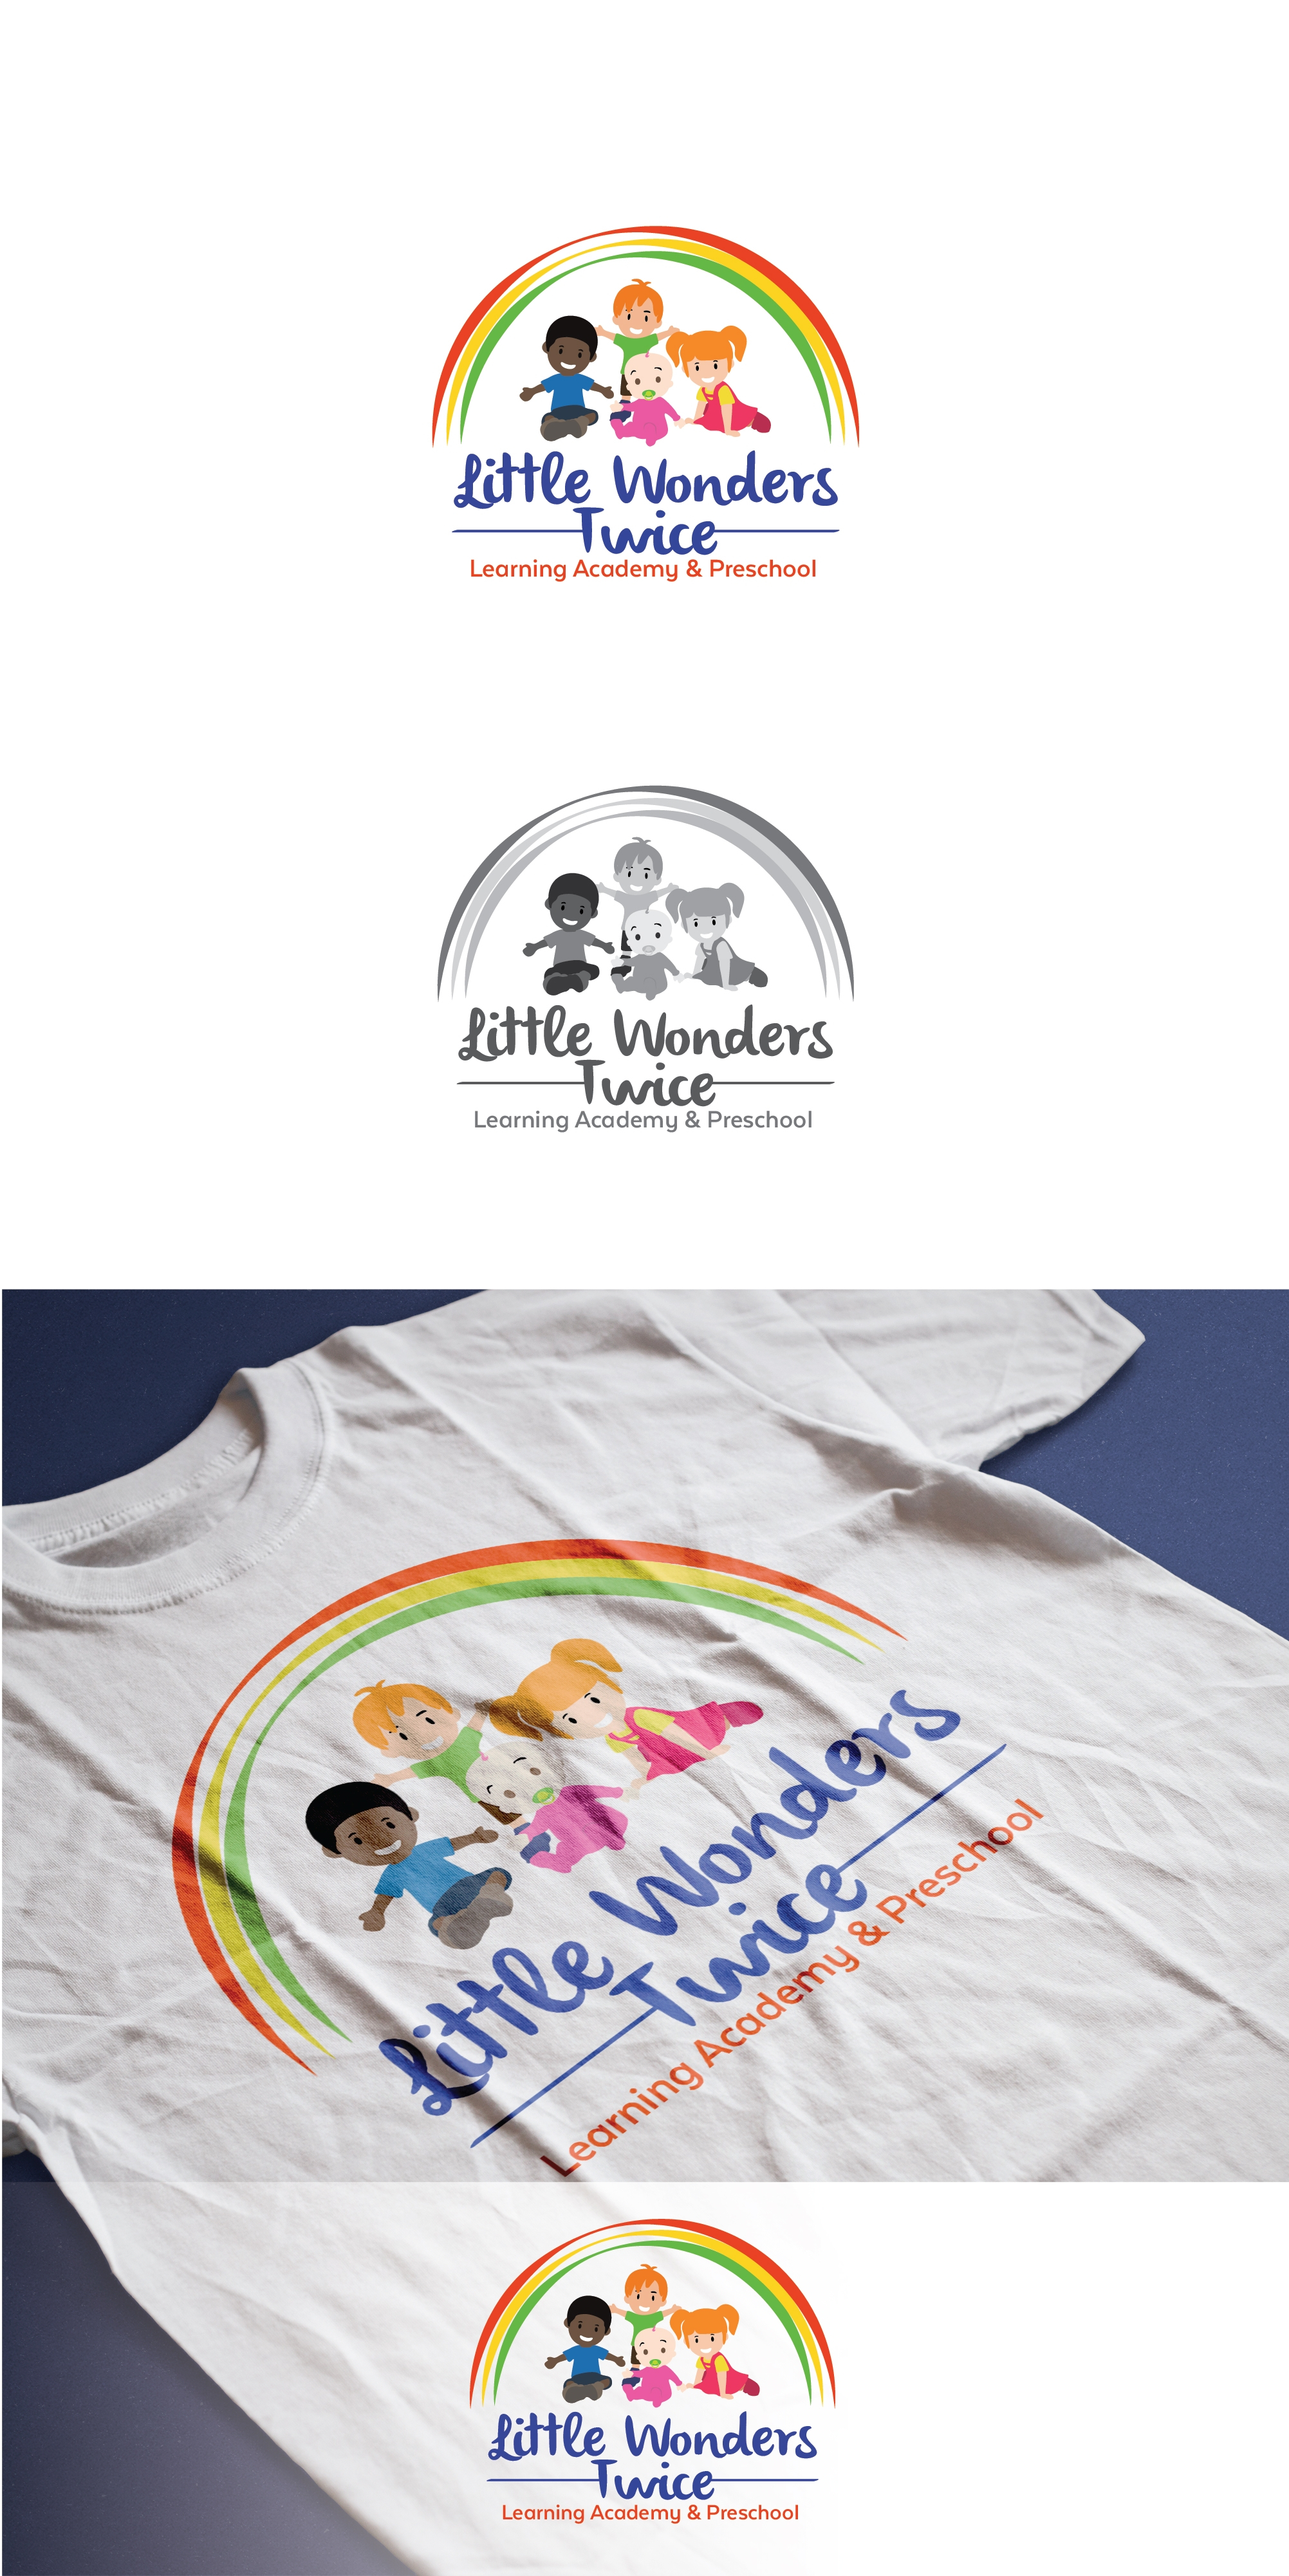 Little Wonders Twice Learning Academy